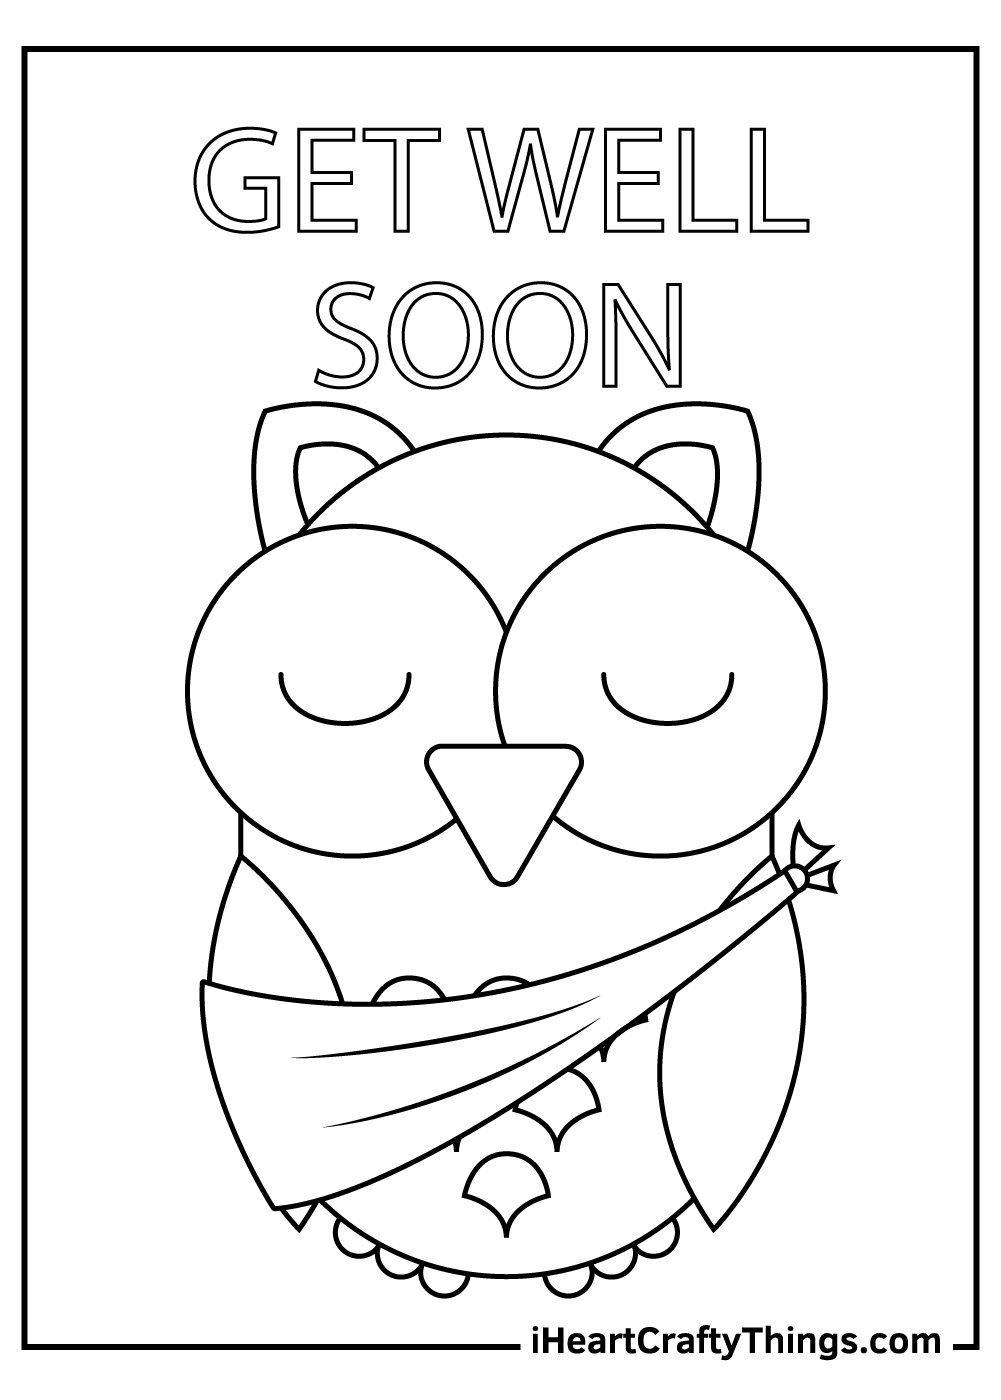 mother get well soon coloring pages free printable